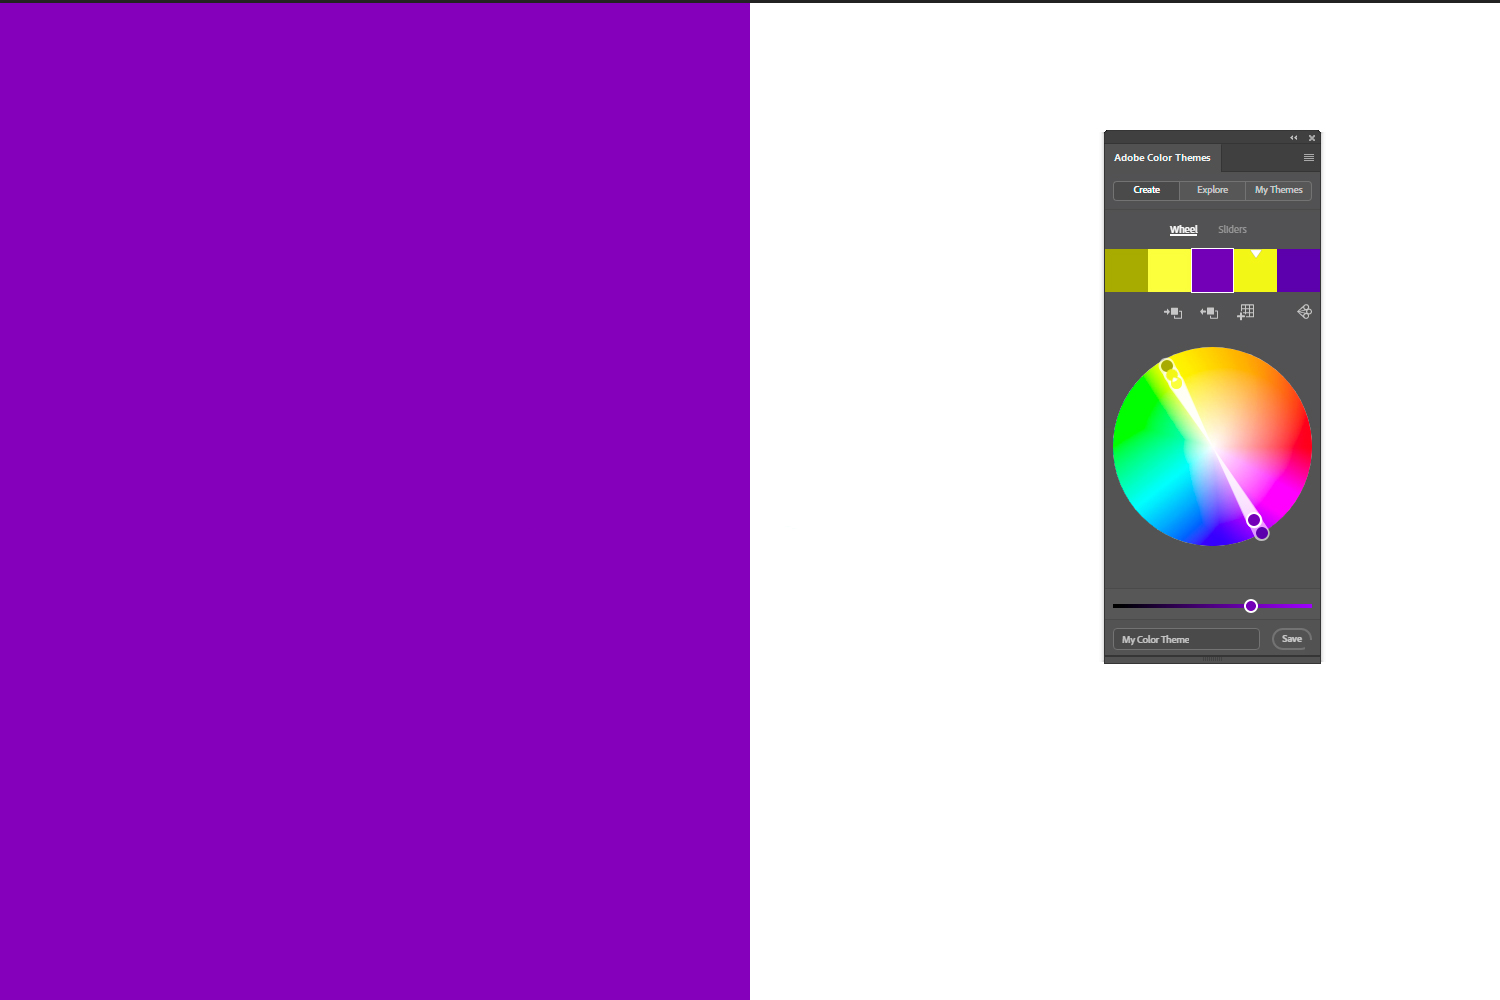 Adobe color themes - complementary colors